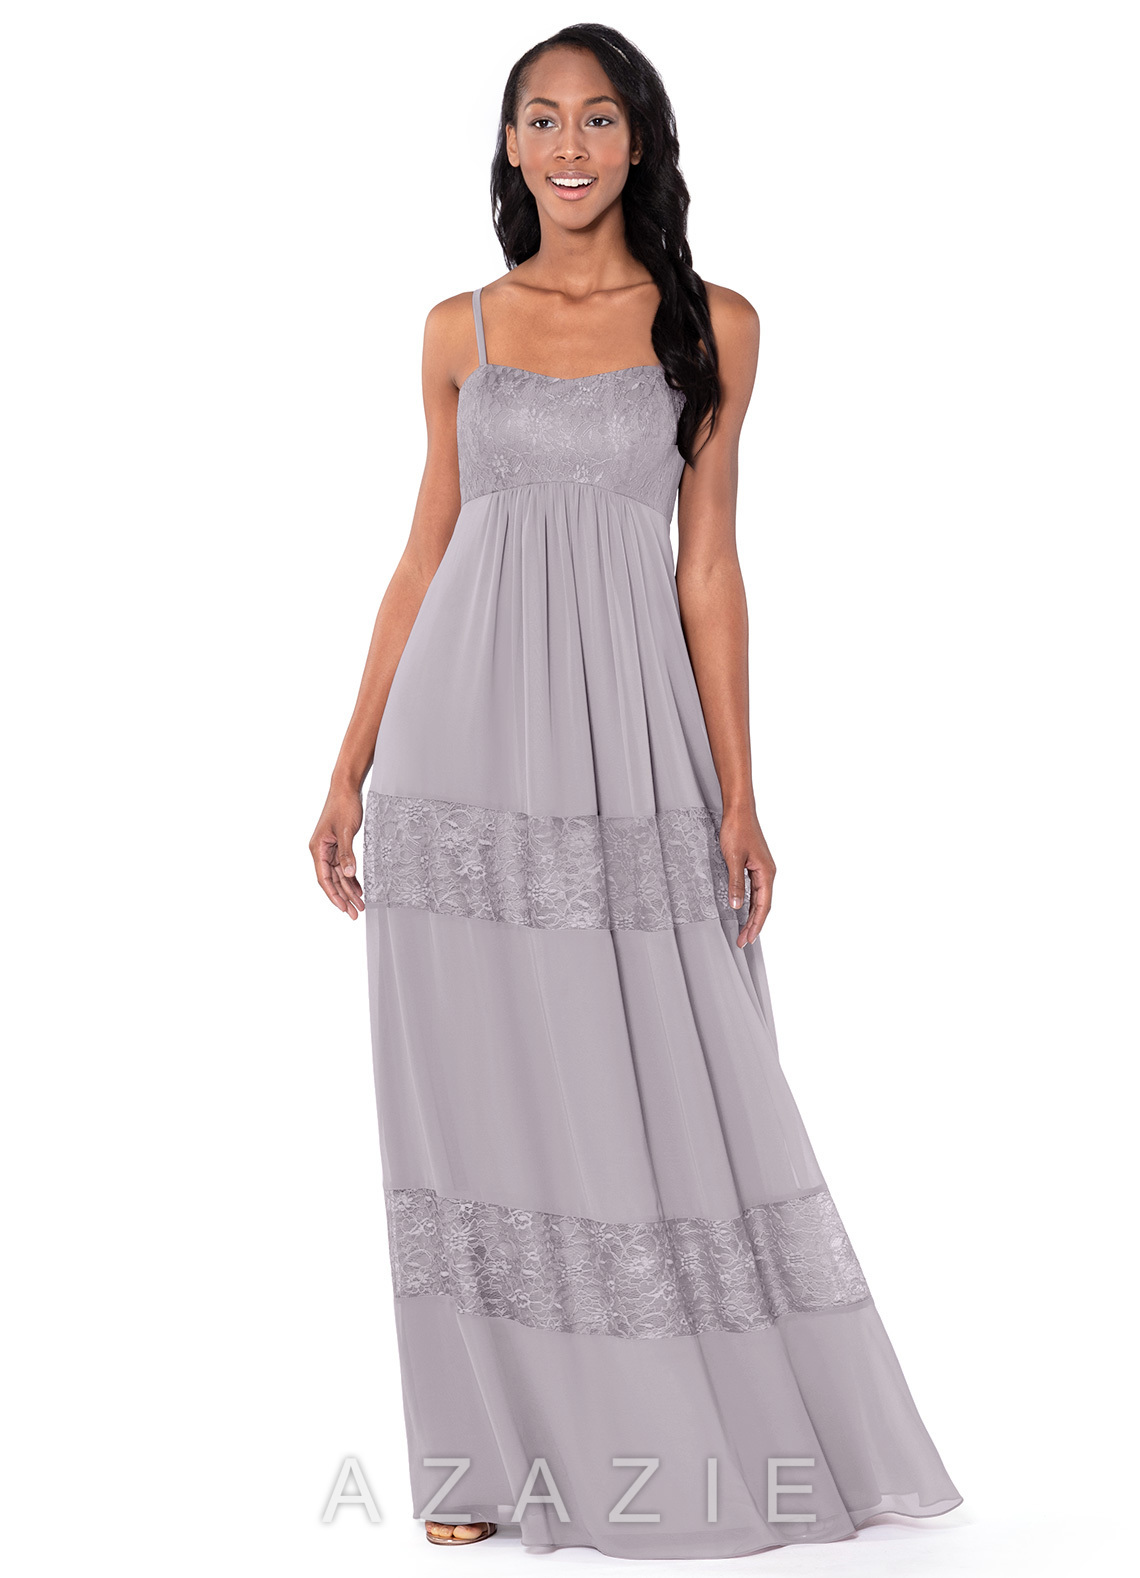 822849bca6e Azazie Audra Bridesmaid Dress